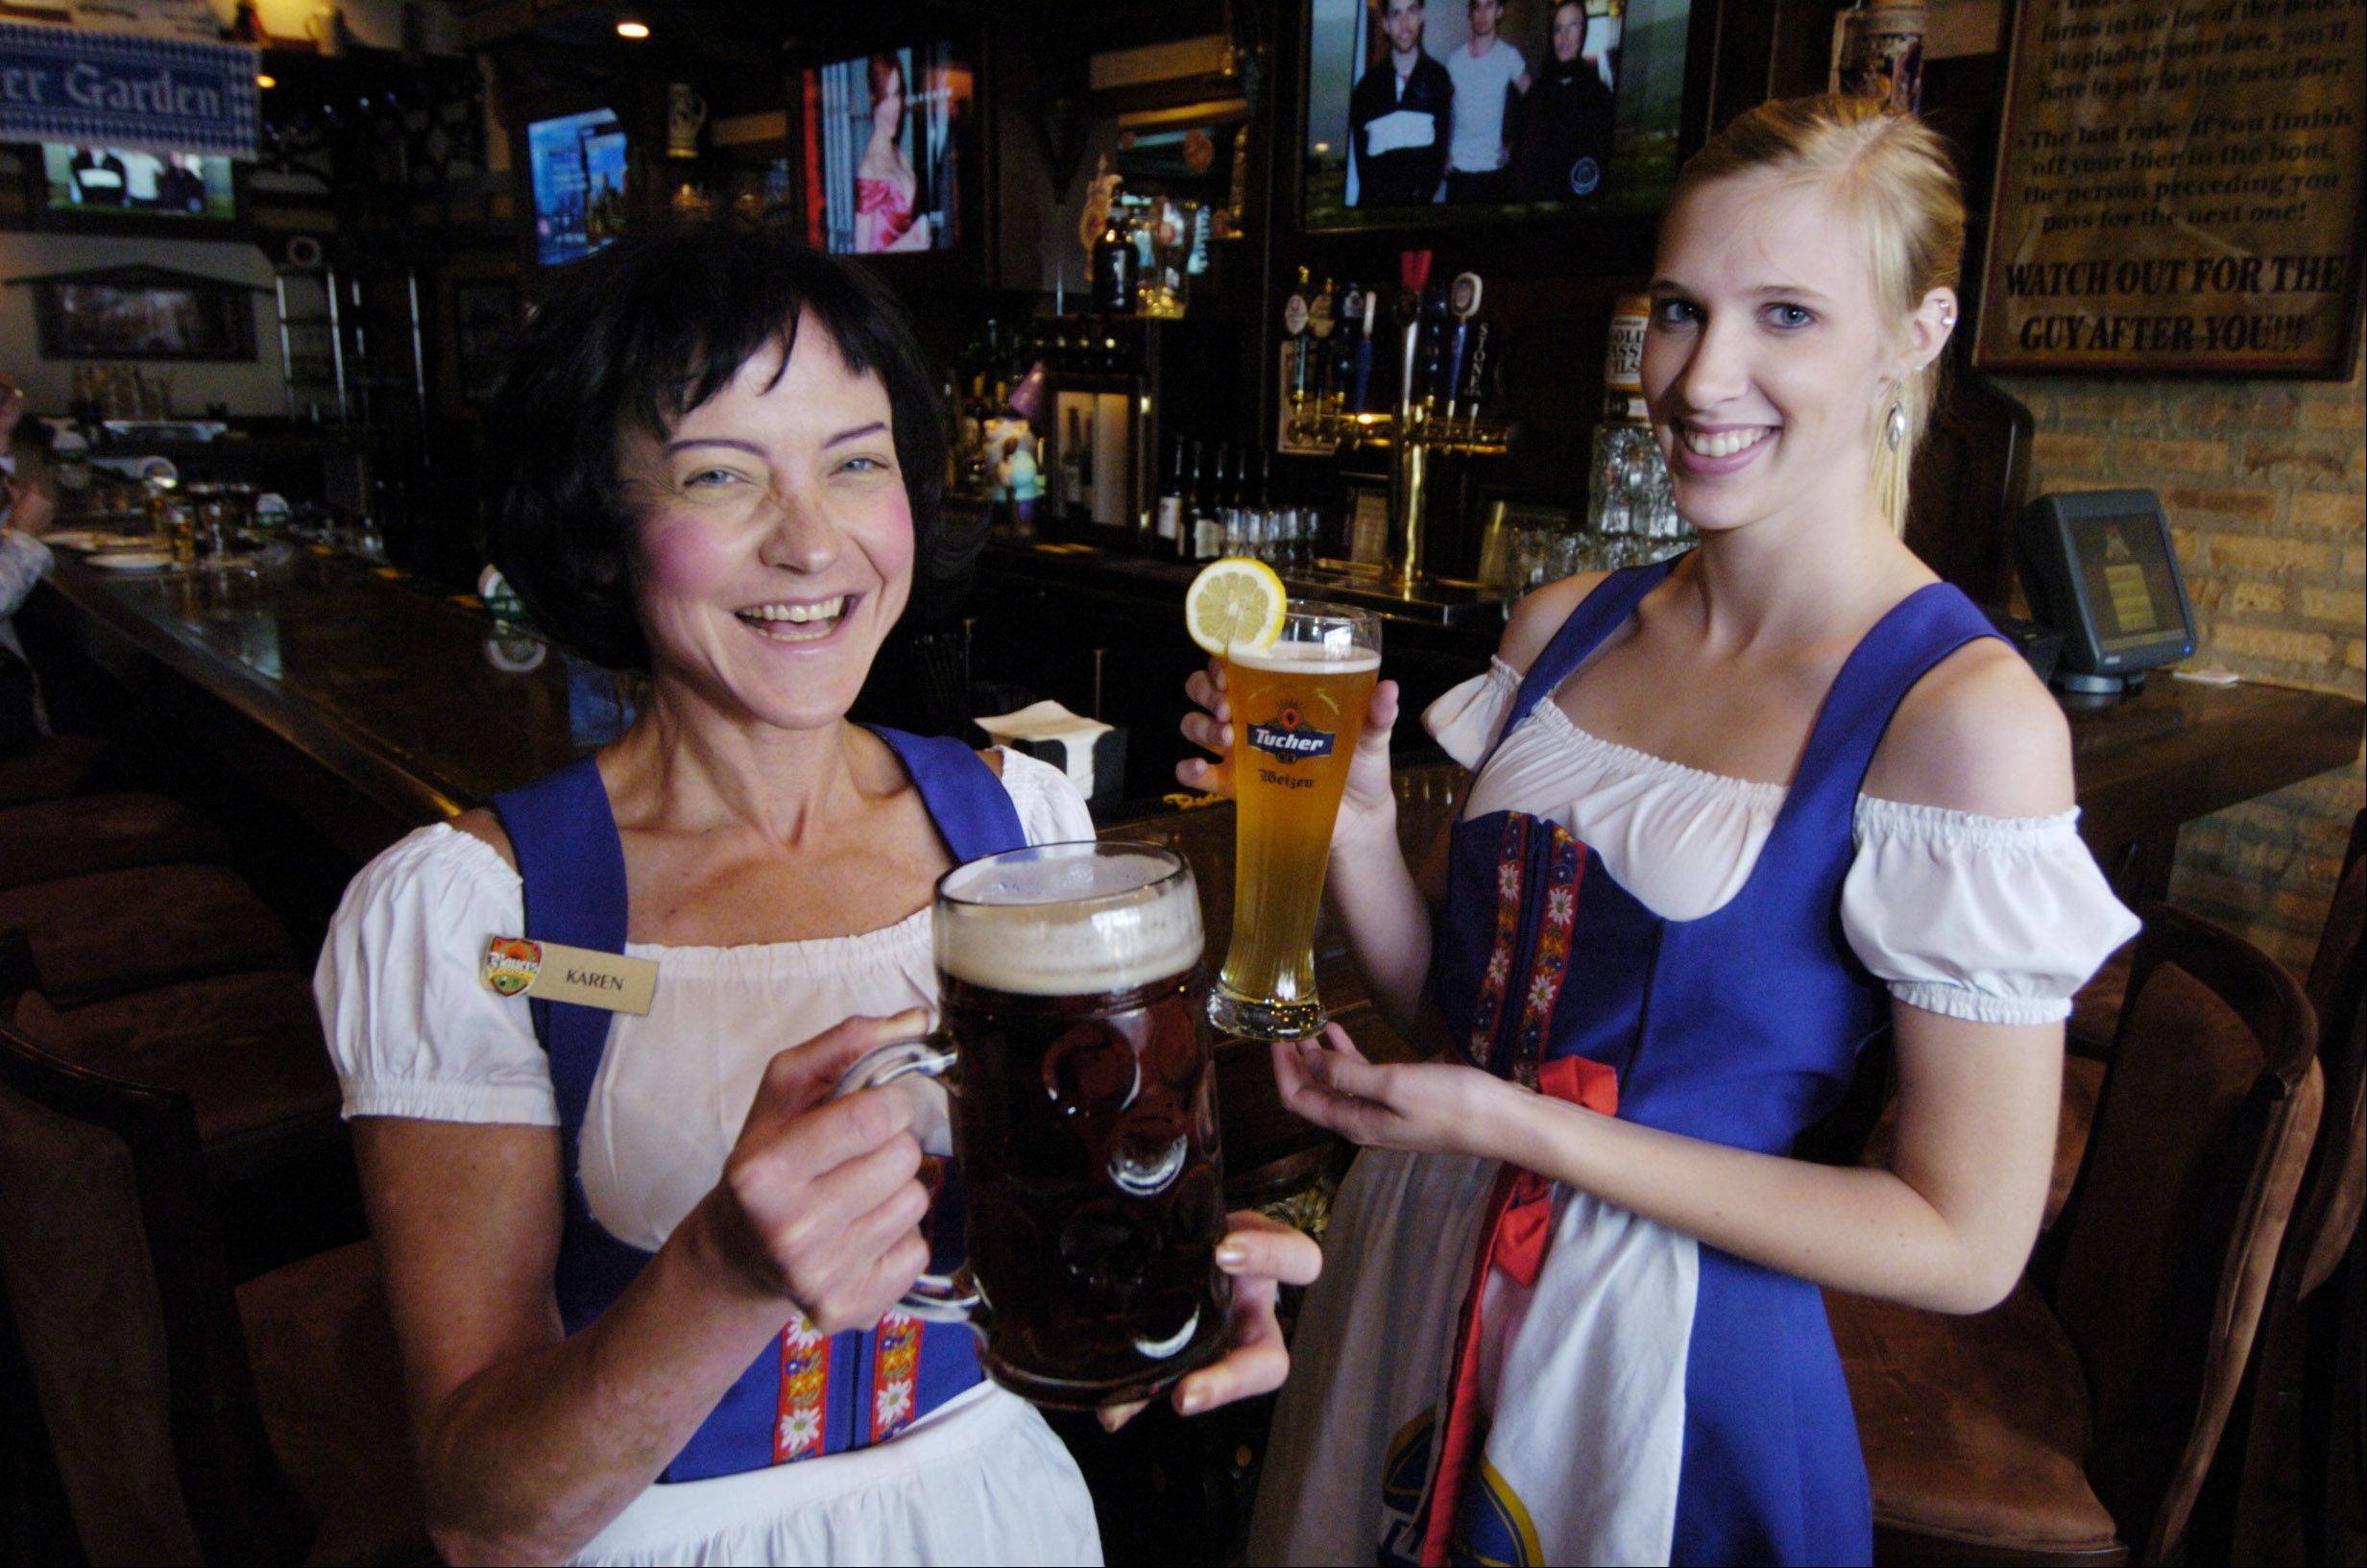 Karen Culver, left, and Alexandria Cook serve up a variety of brews at Bauer's Brauhaus in Palatine.